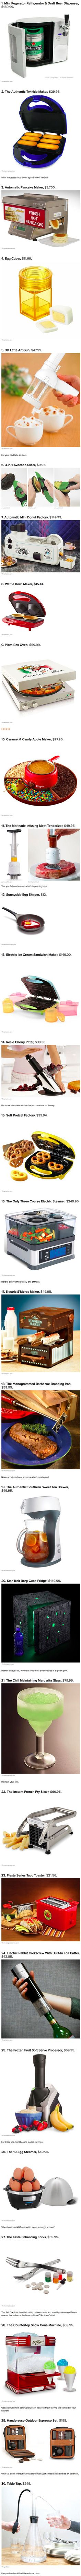 We have rounded up some cool and creative gadgets that will make your kitchen geekier.